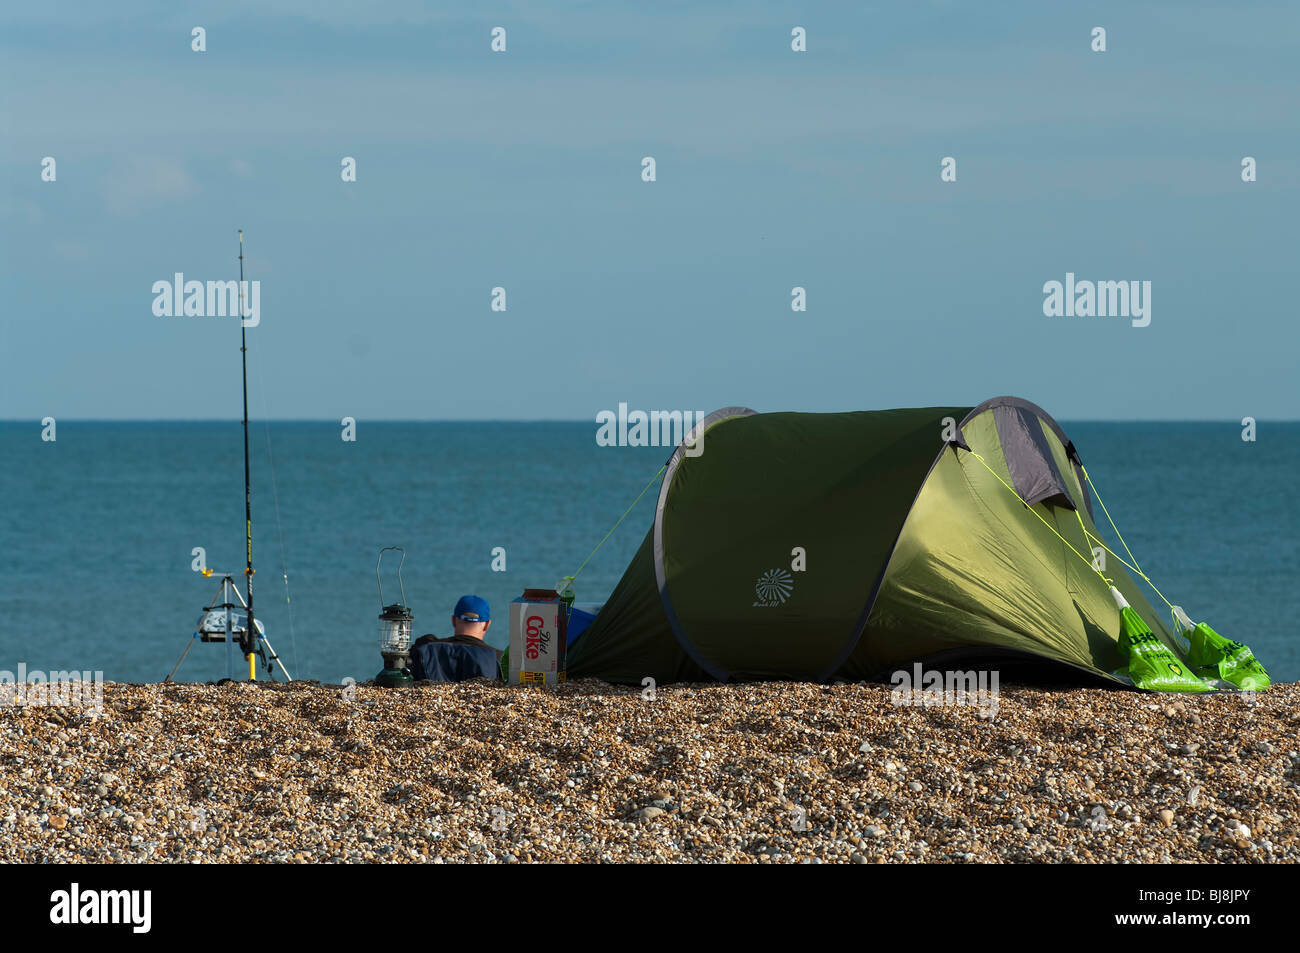 Sea angler waits to catch fish at Dungeness, Kent, England - Stock Image